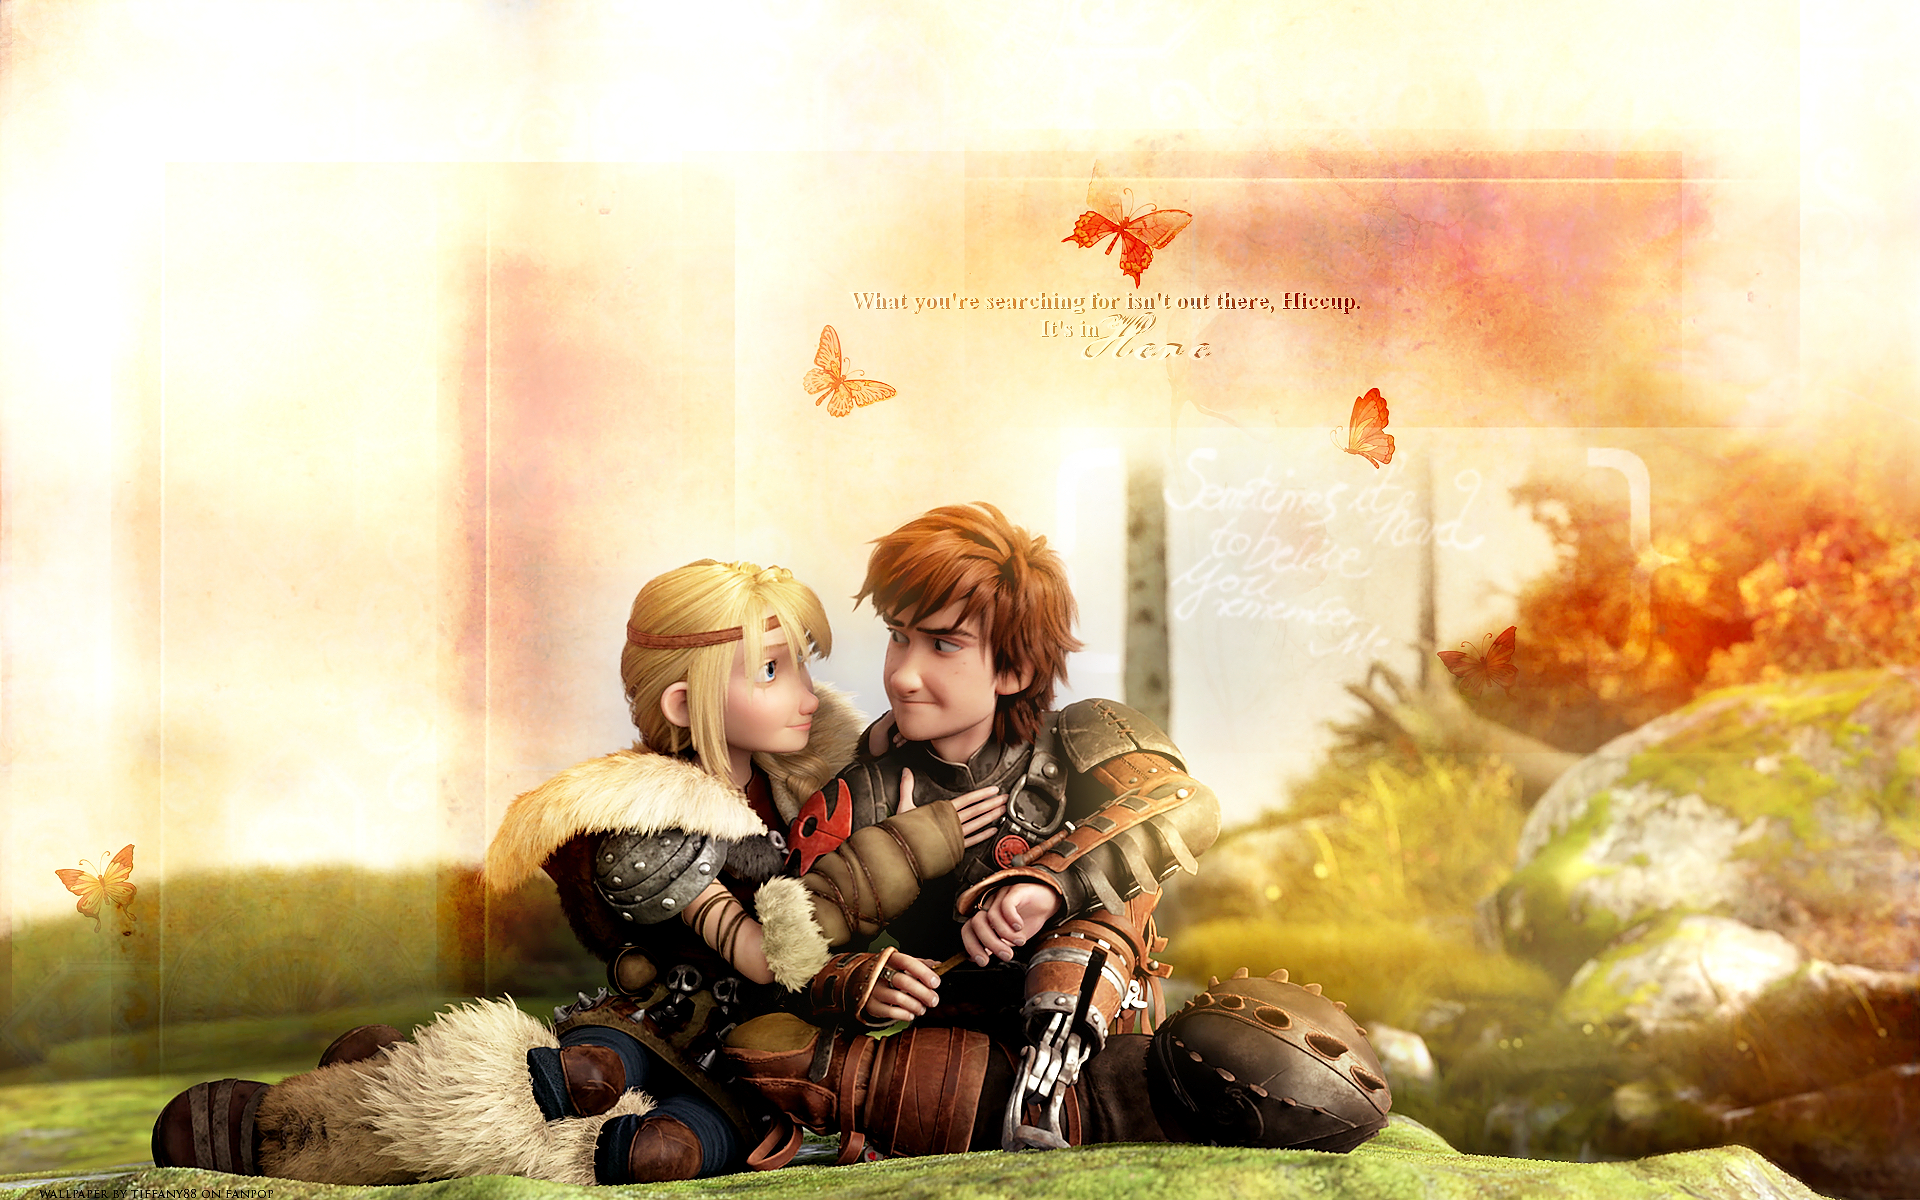 How to Train Your Dragon images Astrid and Hiccup - HQ wallpaper HD ...